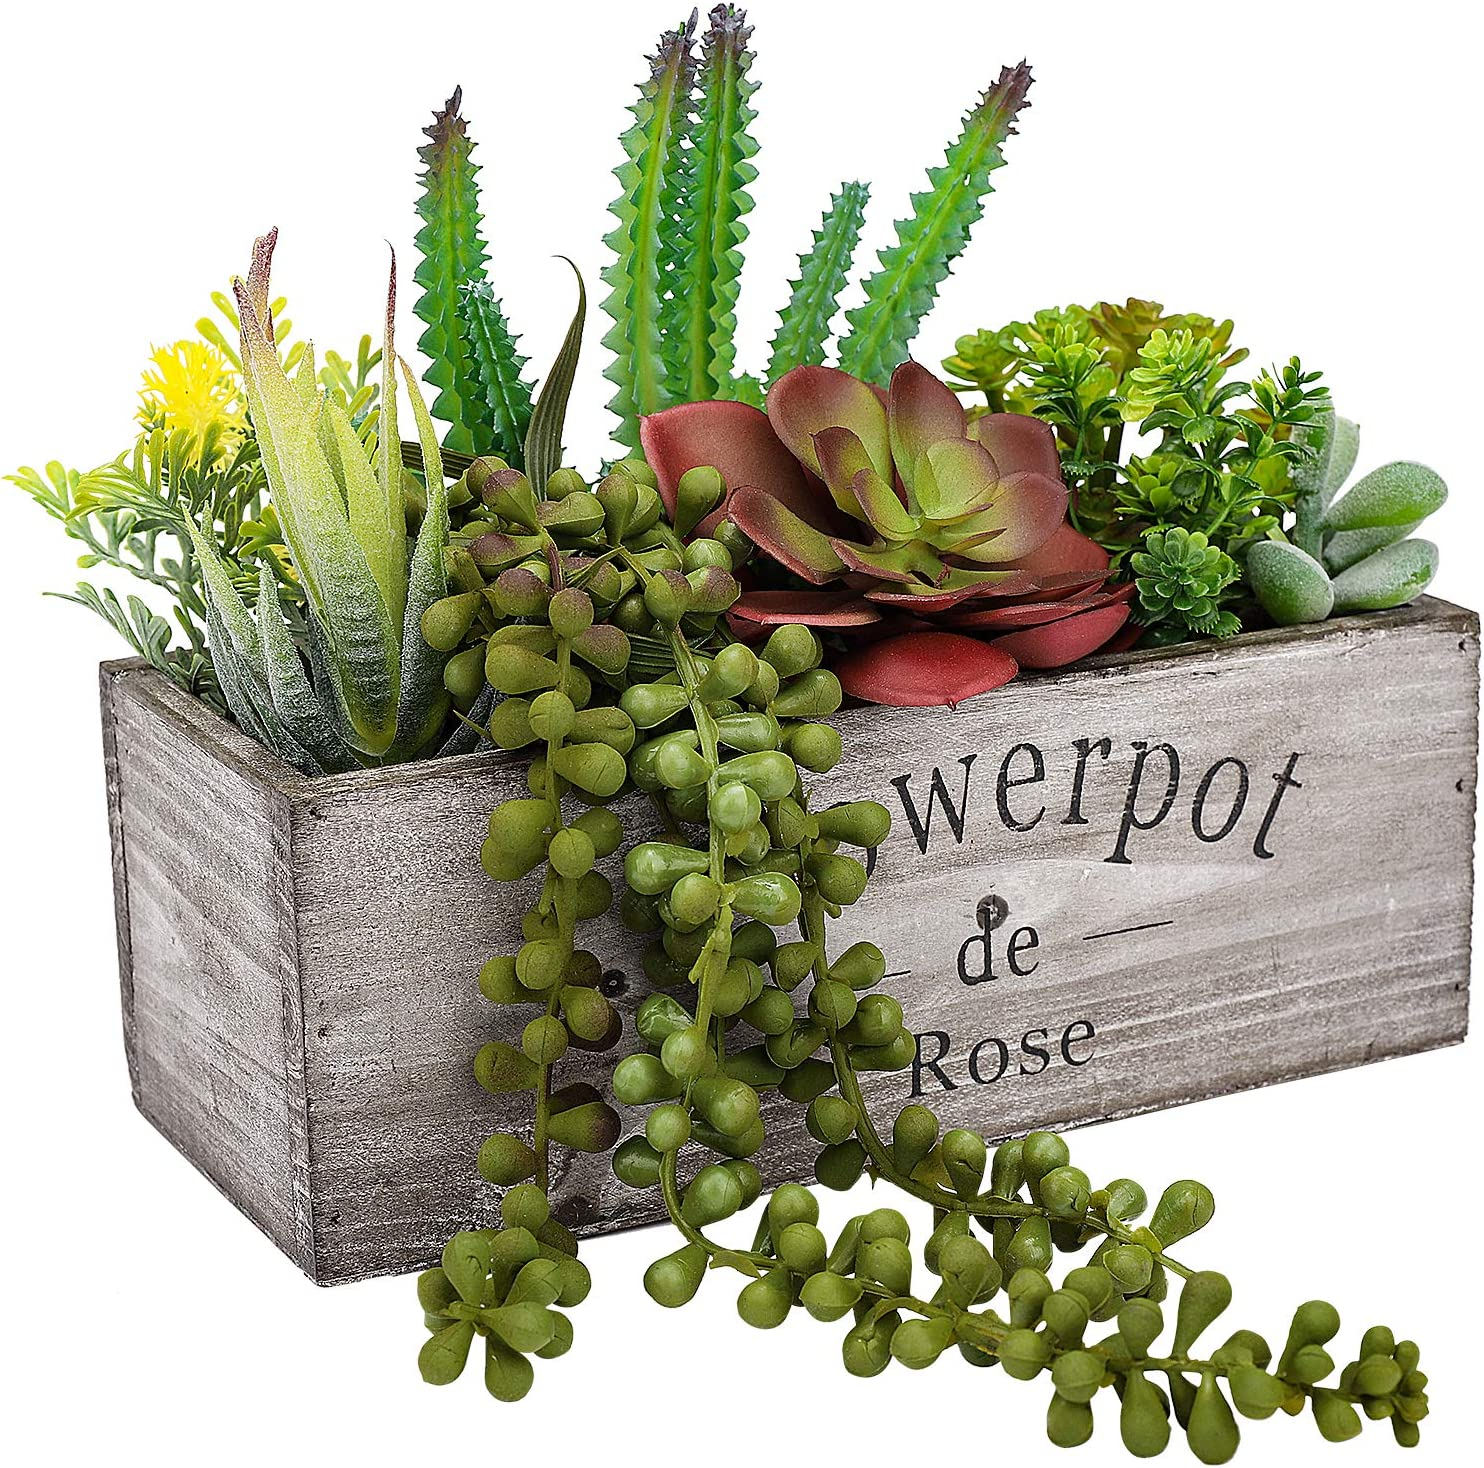 Hopewood Artificial Pre Made Succulent Wood Planter Arrangement Artificial Succulents Plants In Pots For Wood Table Top Mixed Assembled Artificial Plants For Home Office Garden Centerpiece Decor Kitchen Dining